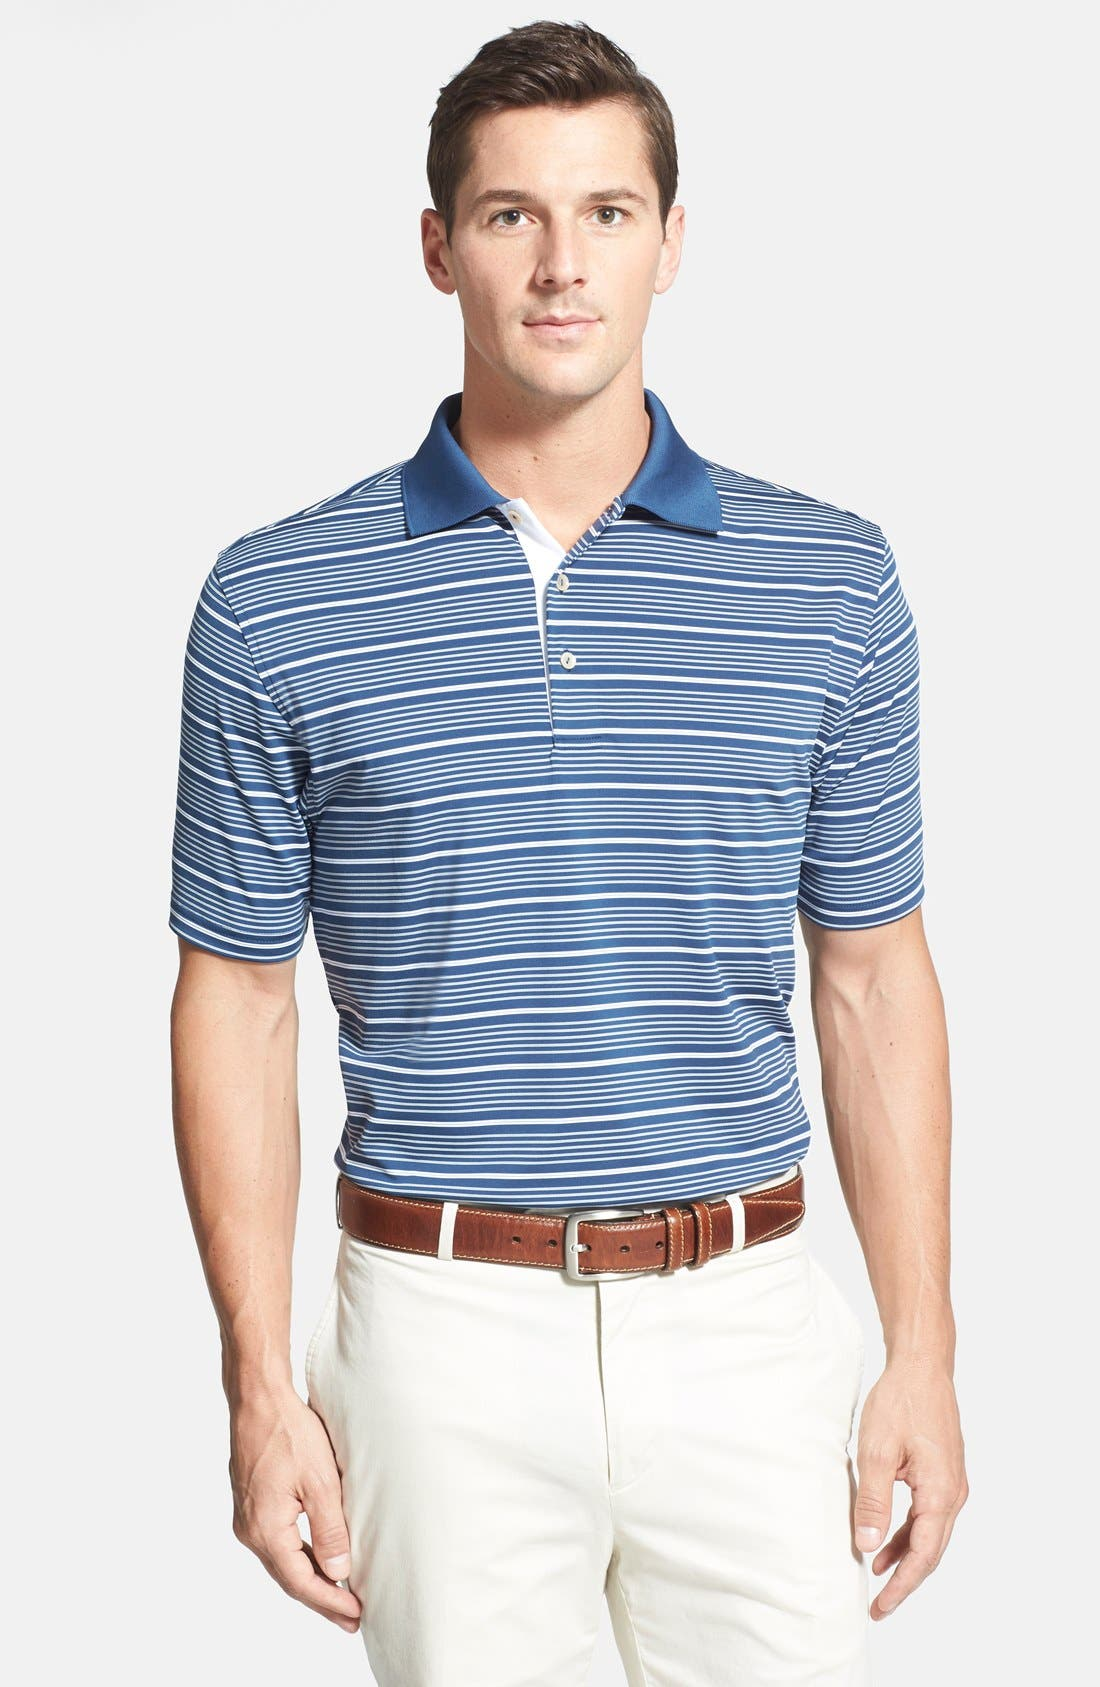 'Staley' Moisture Wicking Polo,                         Main,                         color, 402